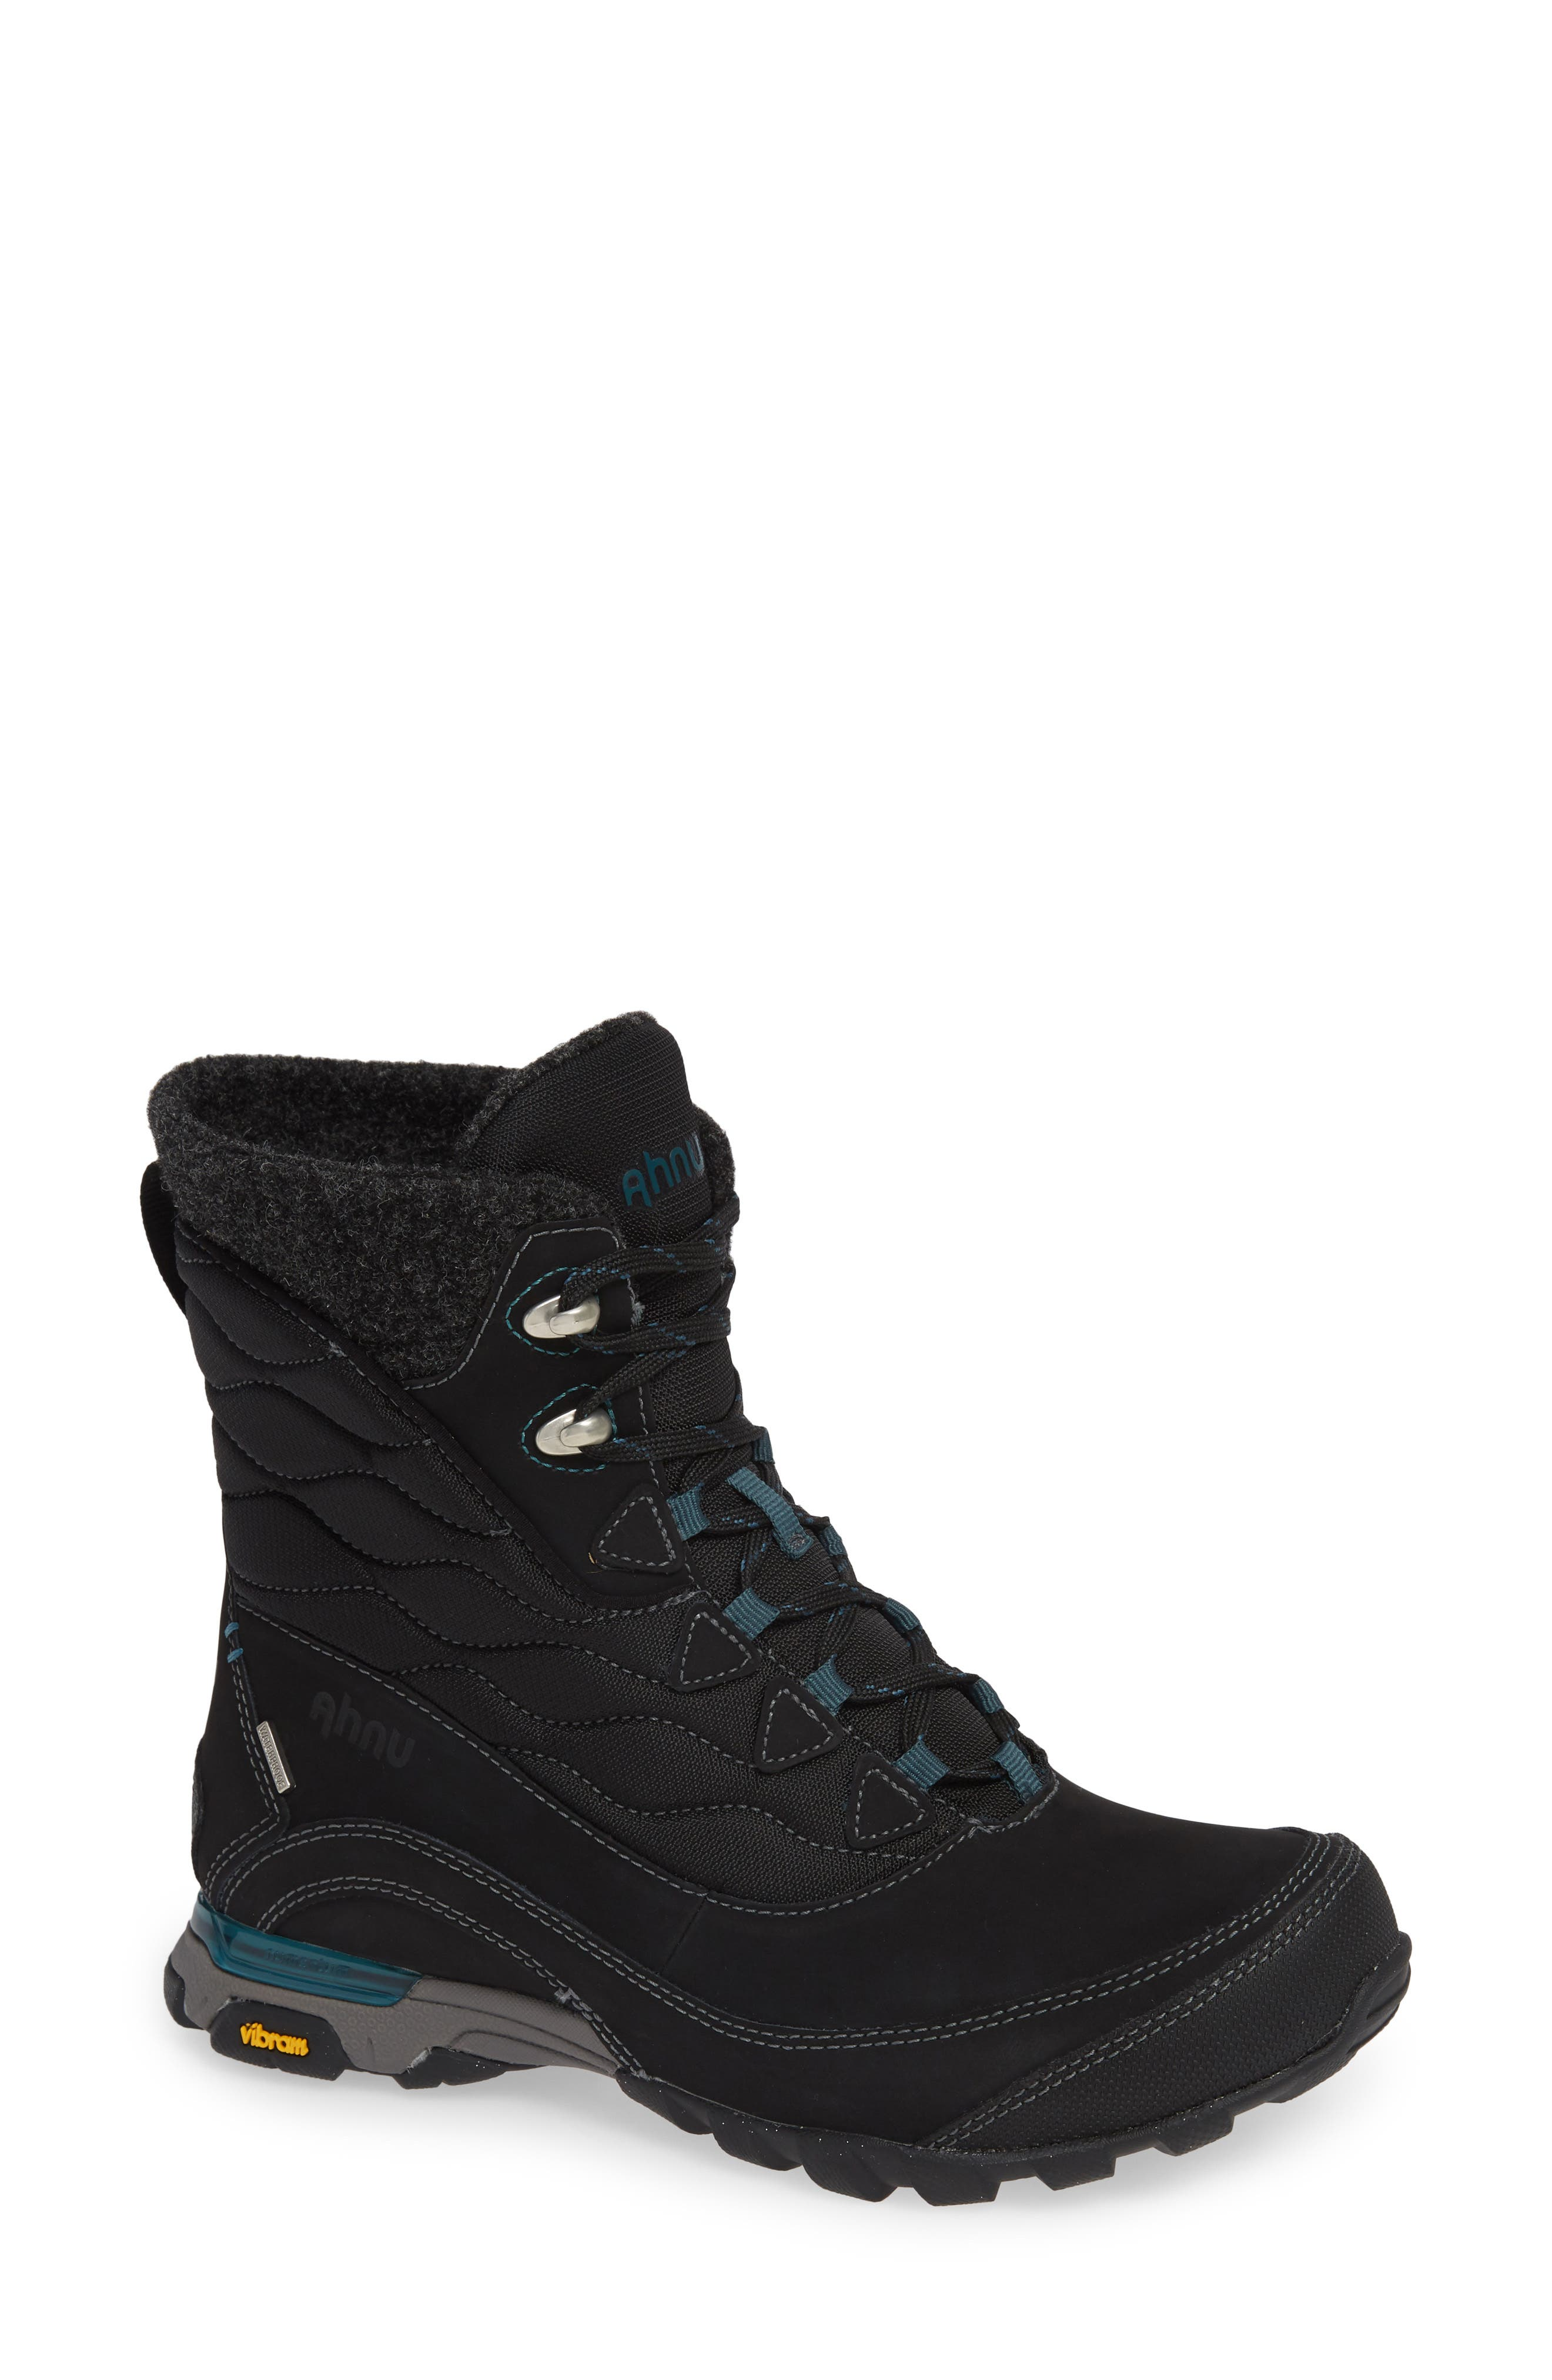 Ahnu By Teva Sugarfrost Insulated Waterproof Boot, Black